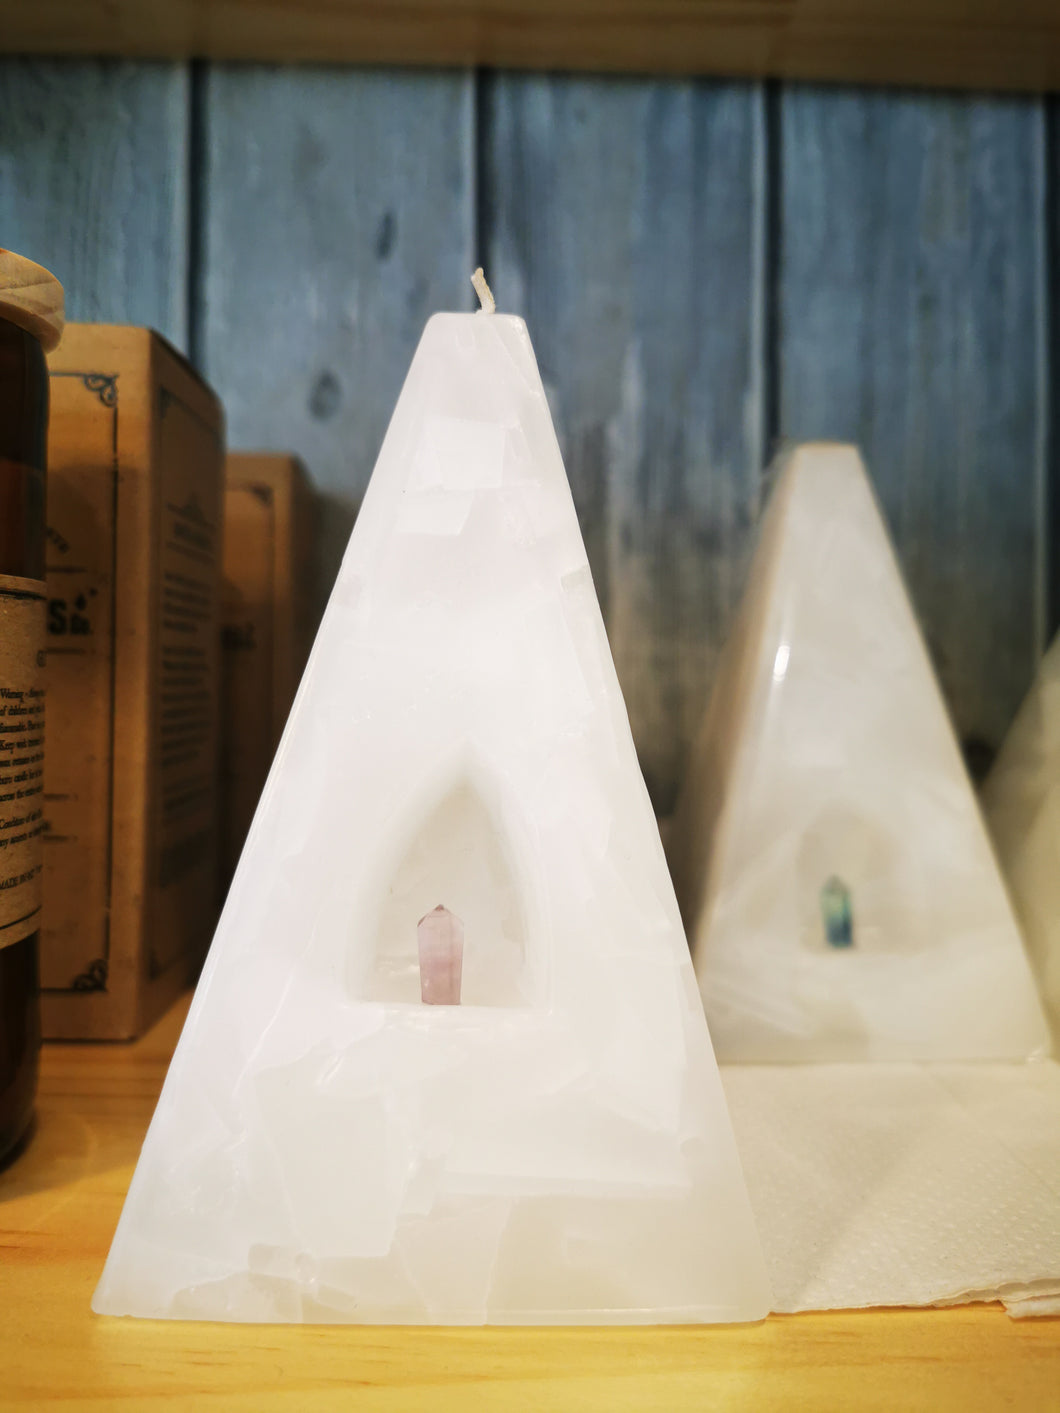 Crystal Pyramid Candle White & Purple with Rose Quartz, Clear Quartz, Amethyst, Fluorite. - Ocean Gypsy NZ